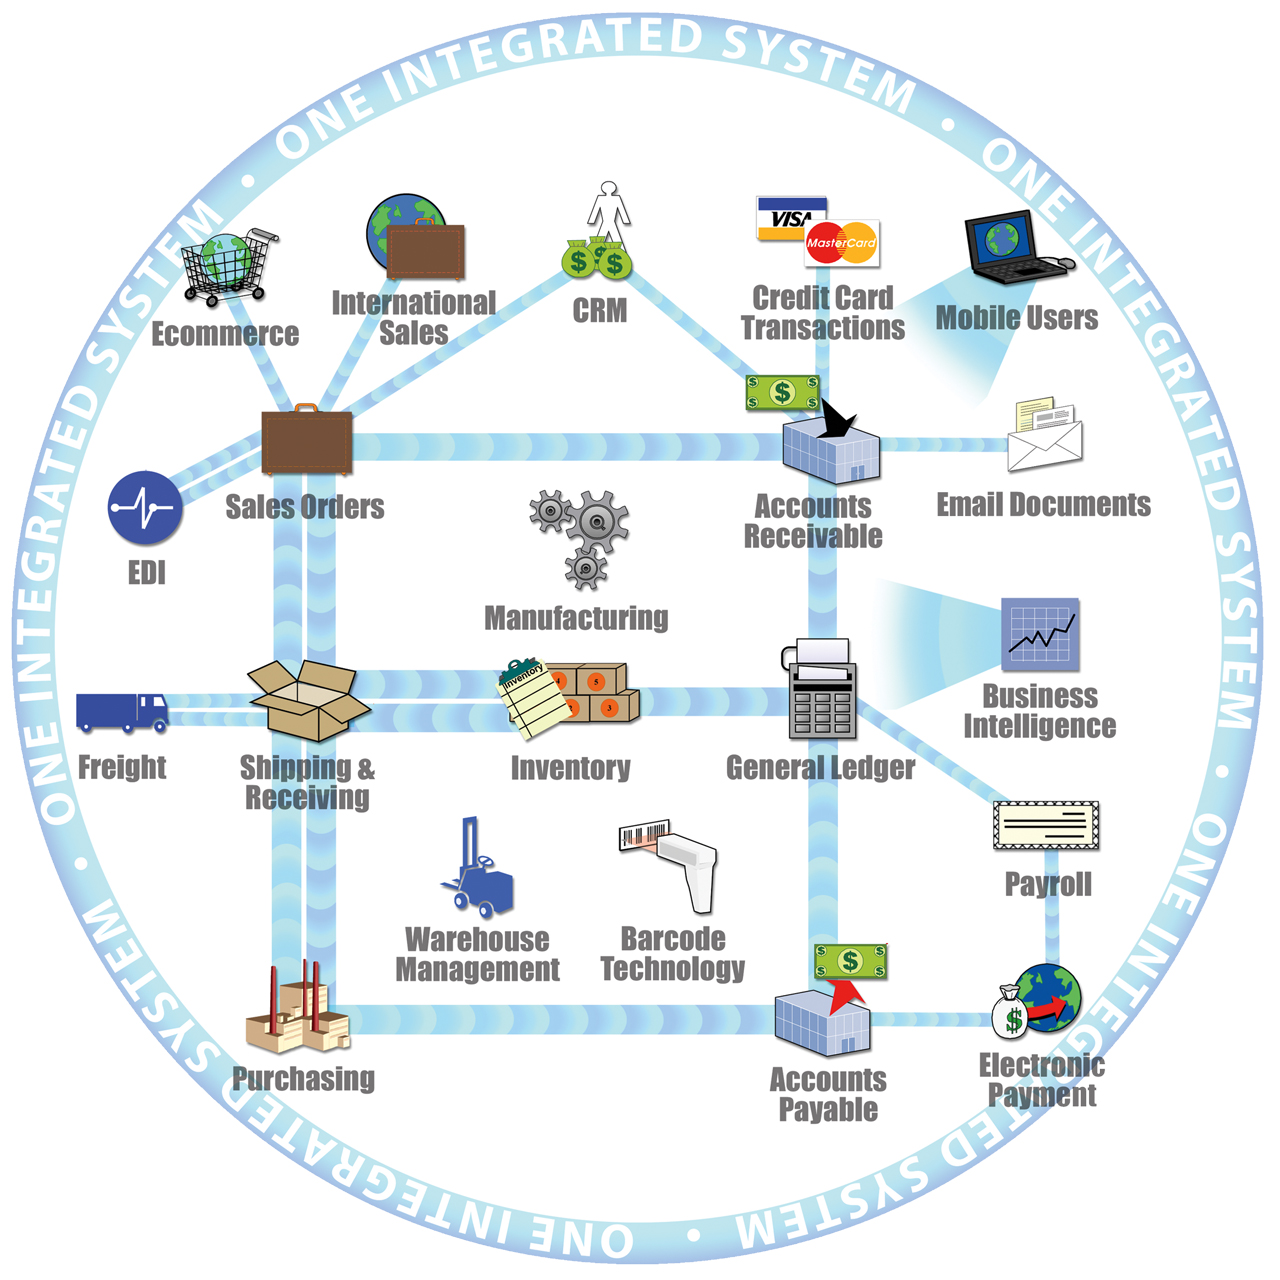 Connect your software into a single integrated ERP system